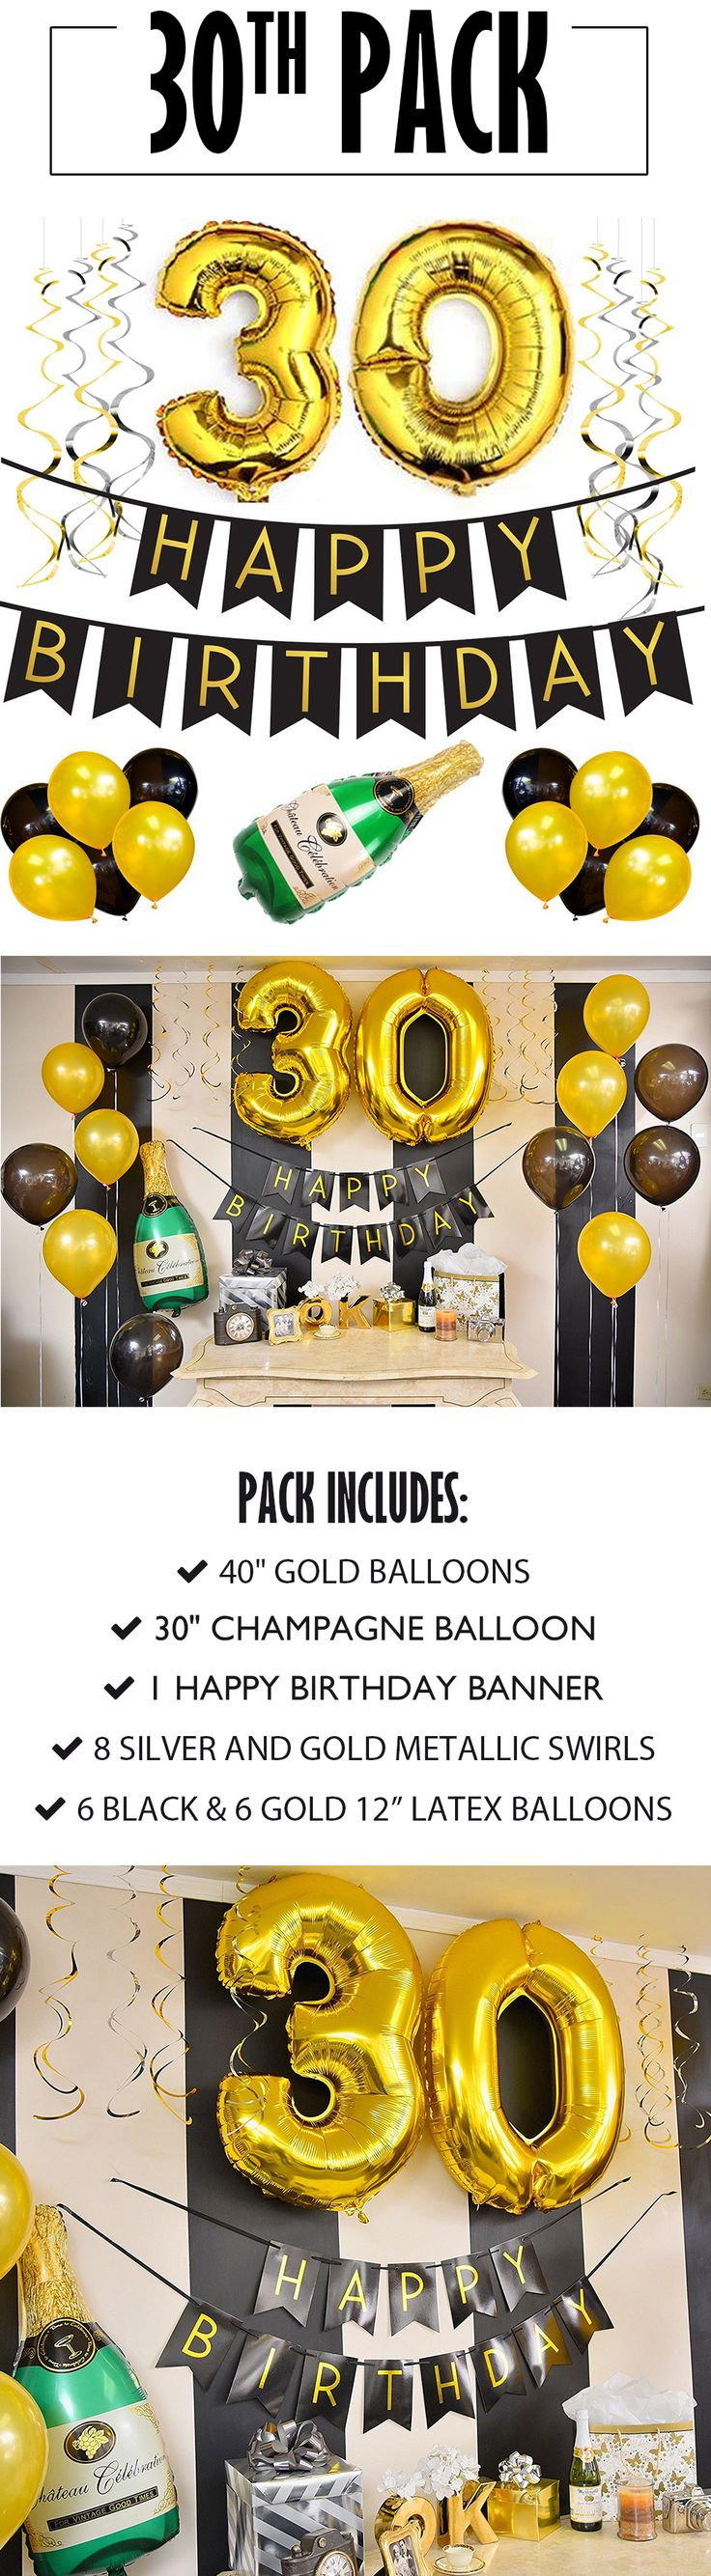 30th Birthday Banner and Balloon Pack!